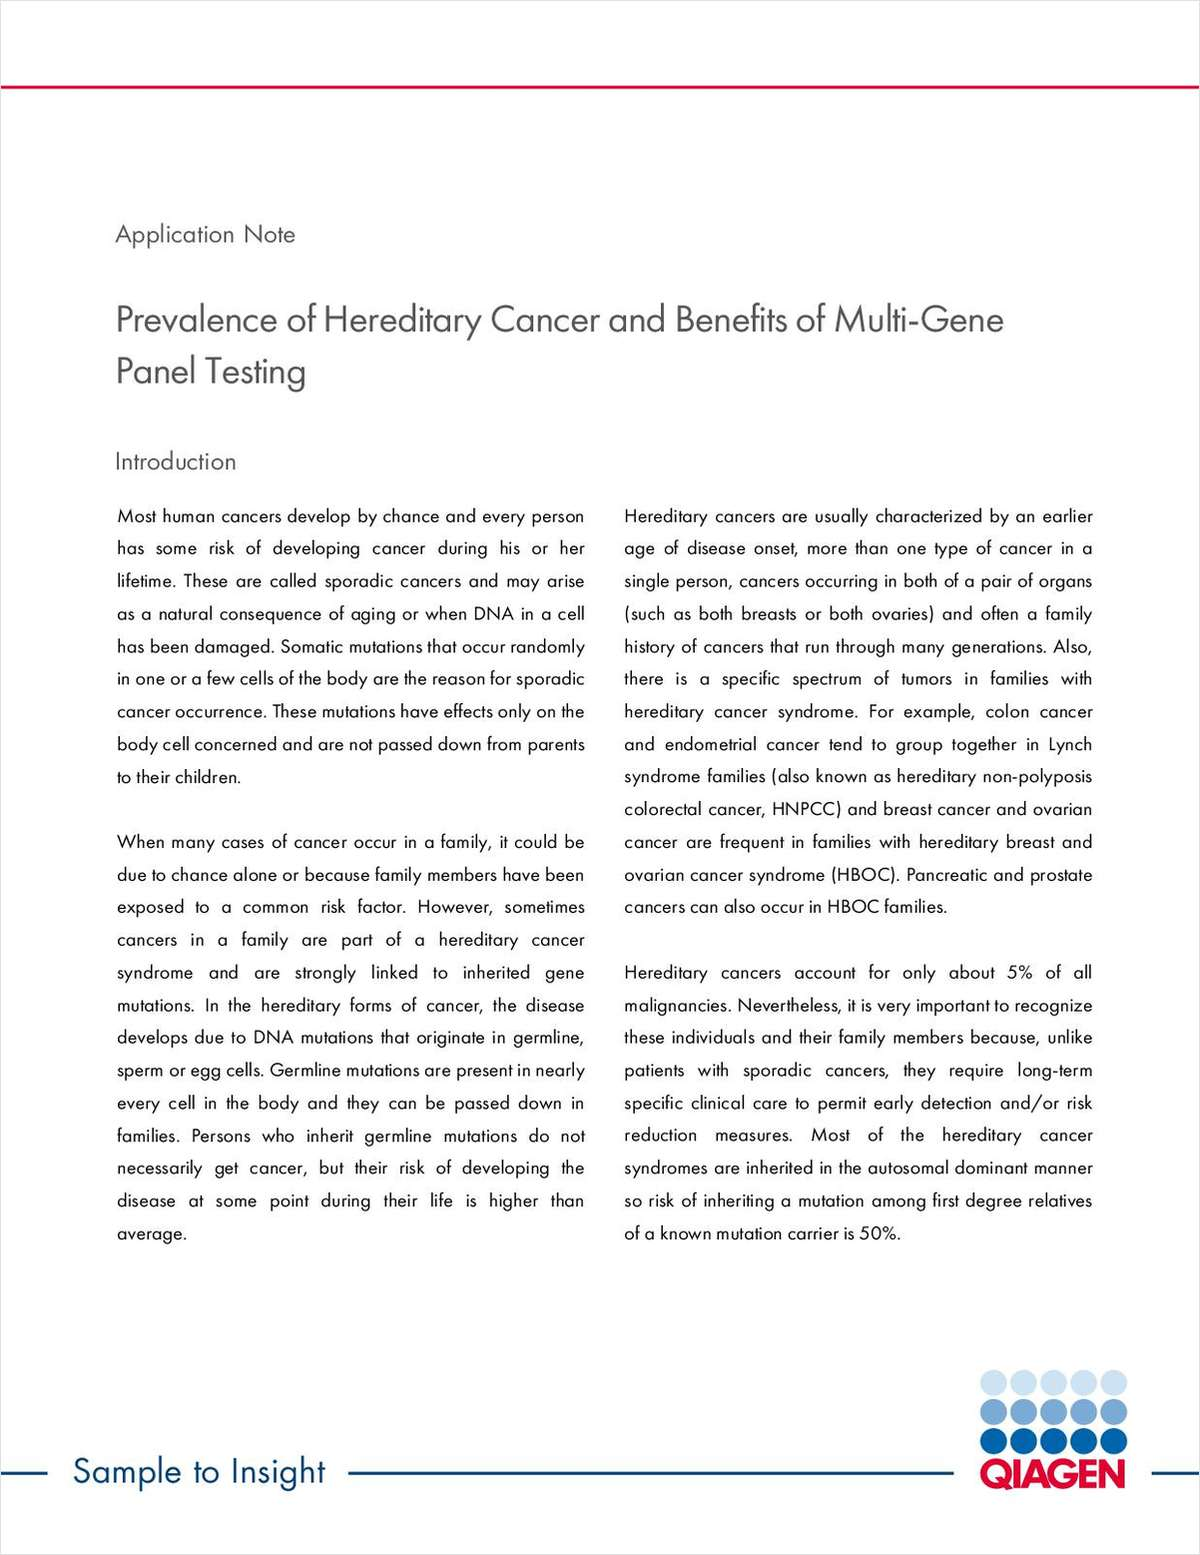 Prevalence of Hereditary Cancer and Benefits of Multi-Gene Panel Testing